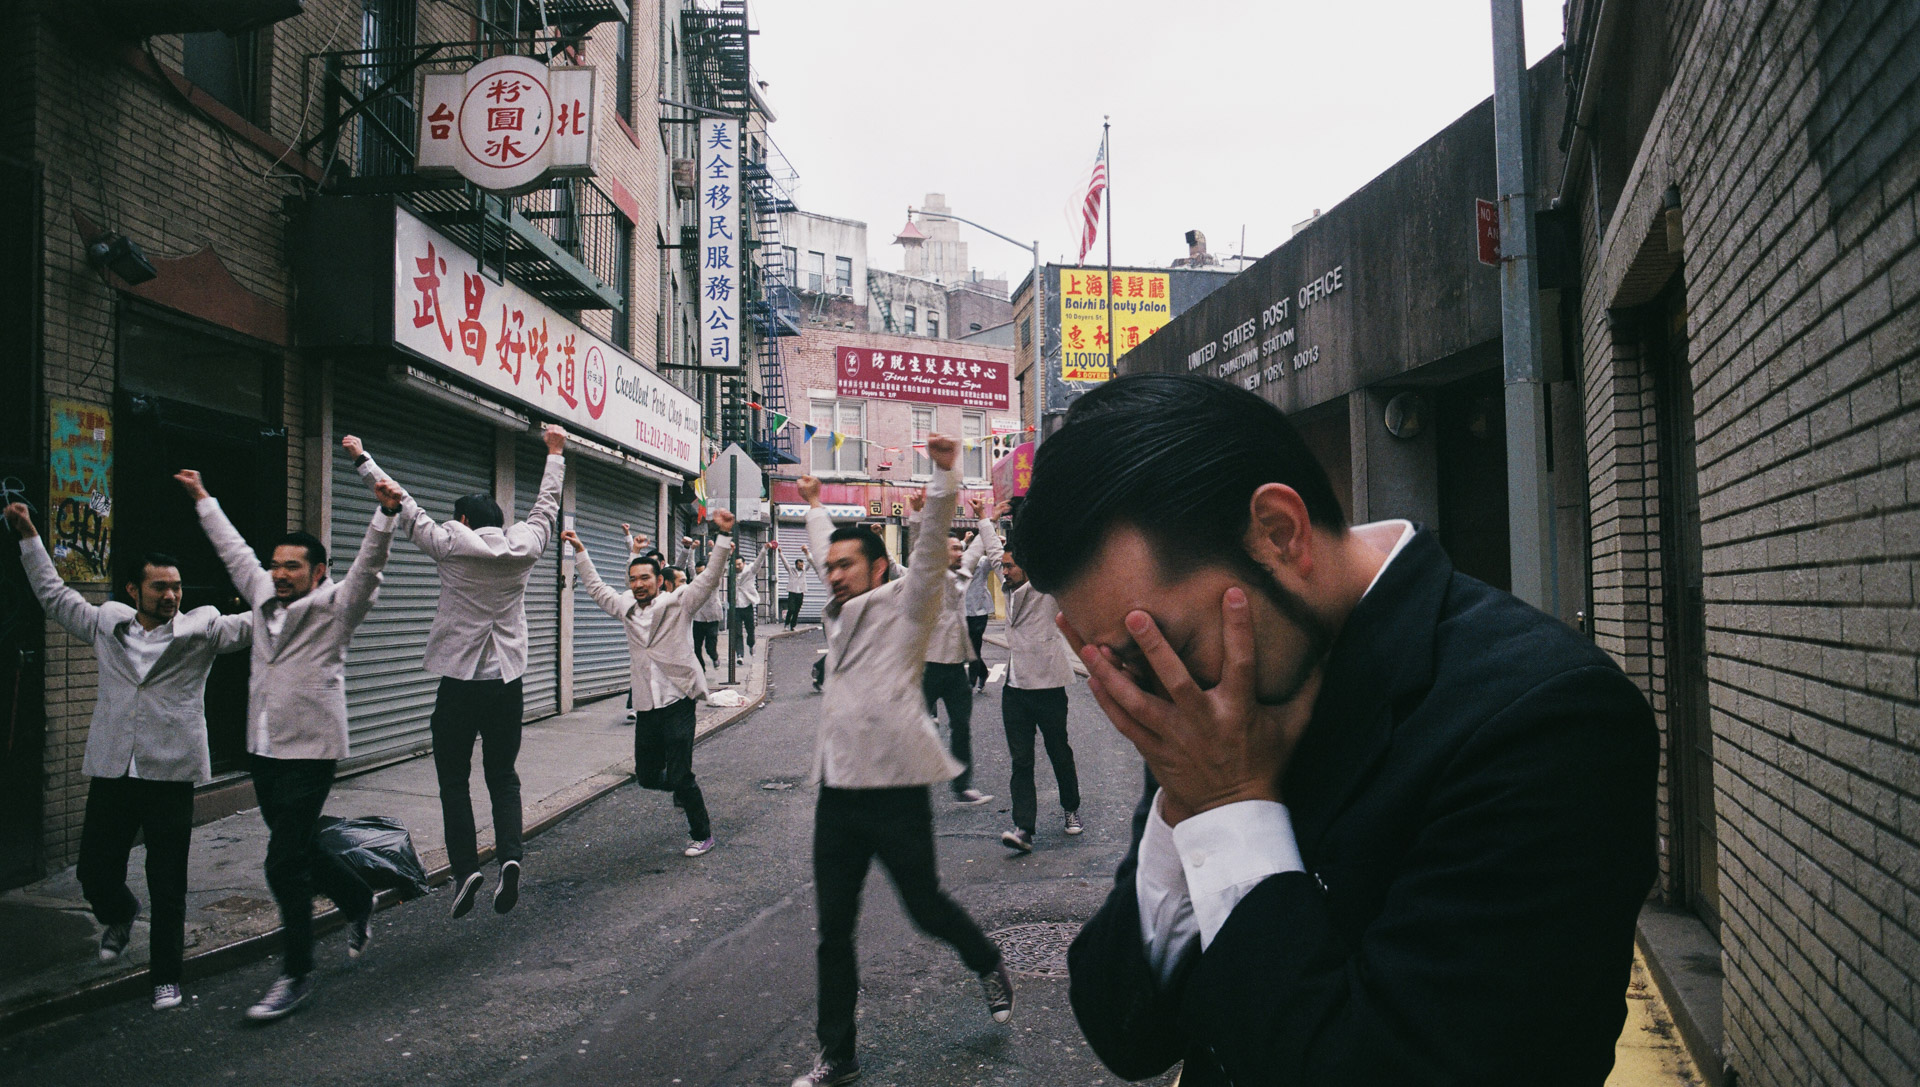 A group of asians in white suits celebrating, same asian in a dark suit hiding his face in shame.